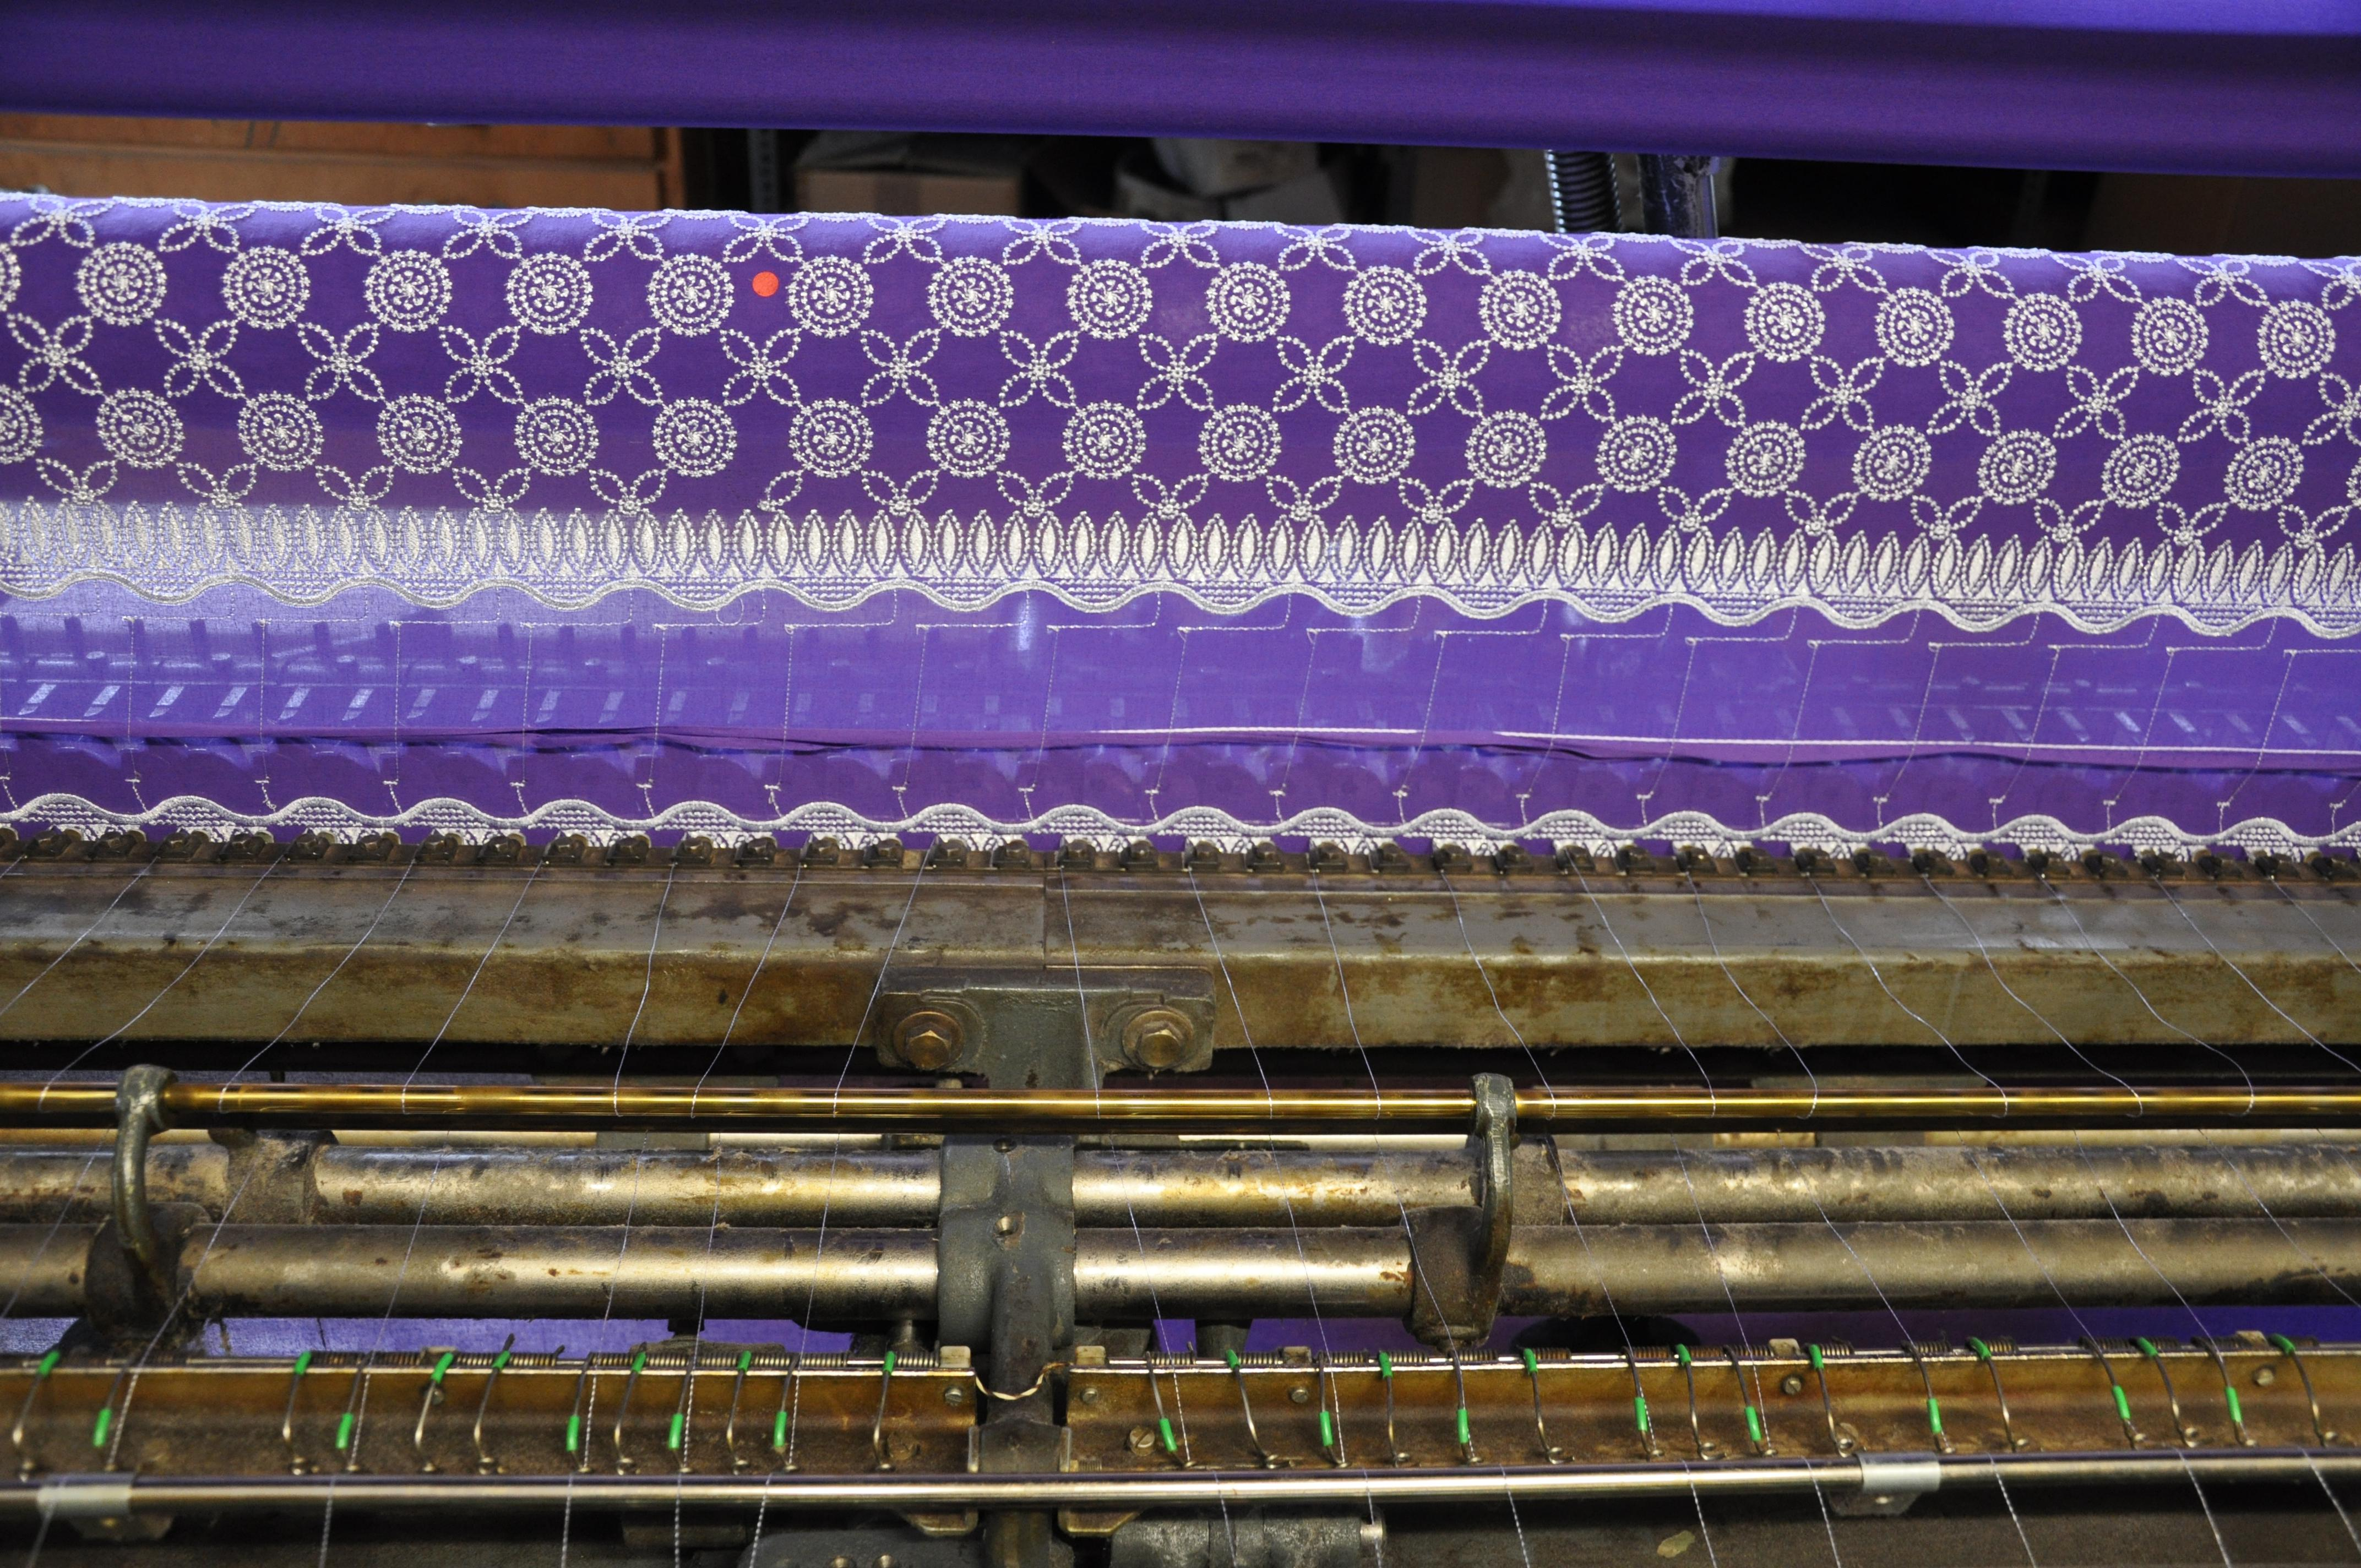 African Lace: an industrial fabric connecting Austria and